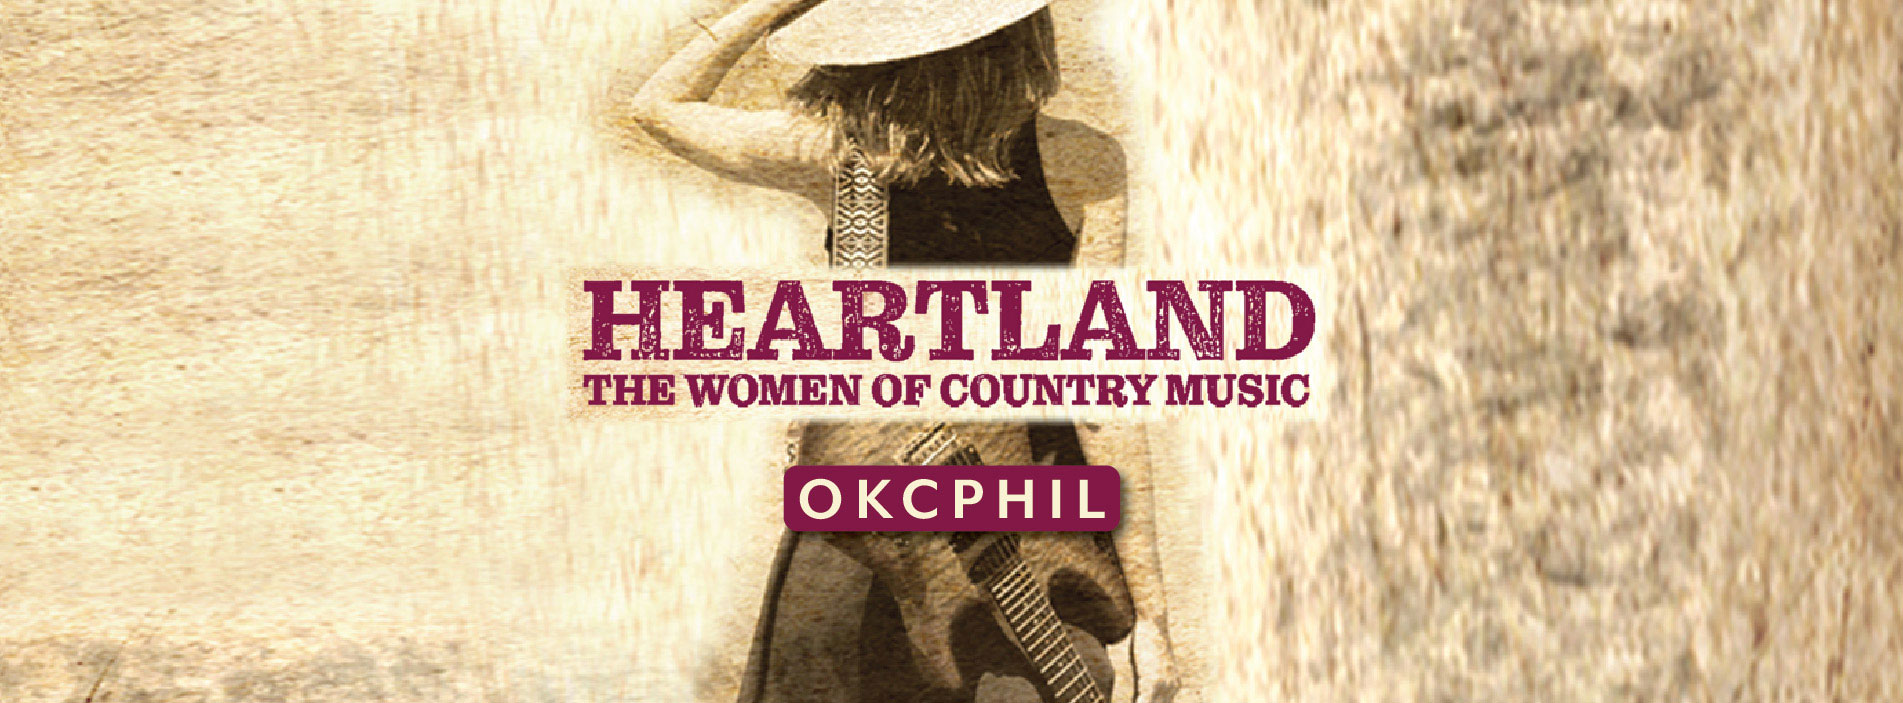 Heartland: The Women of Country Music